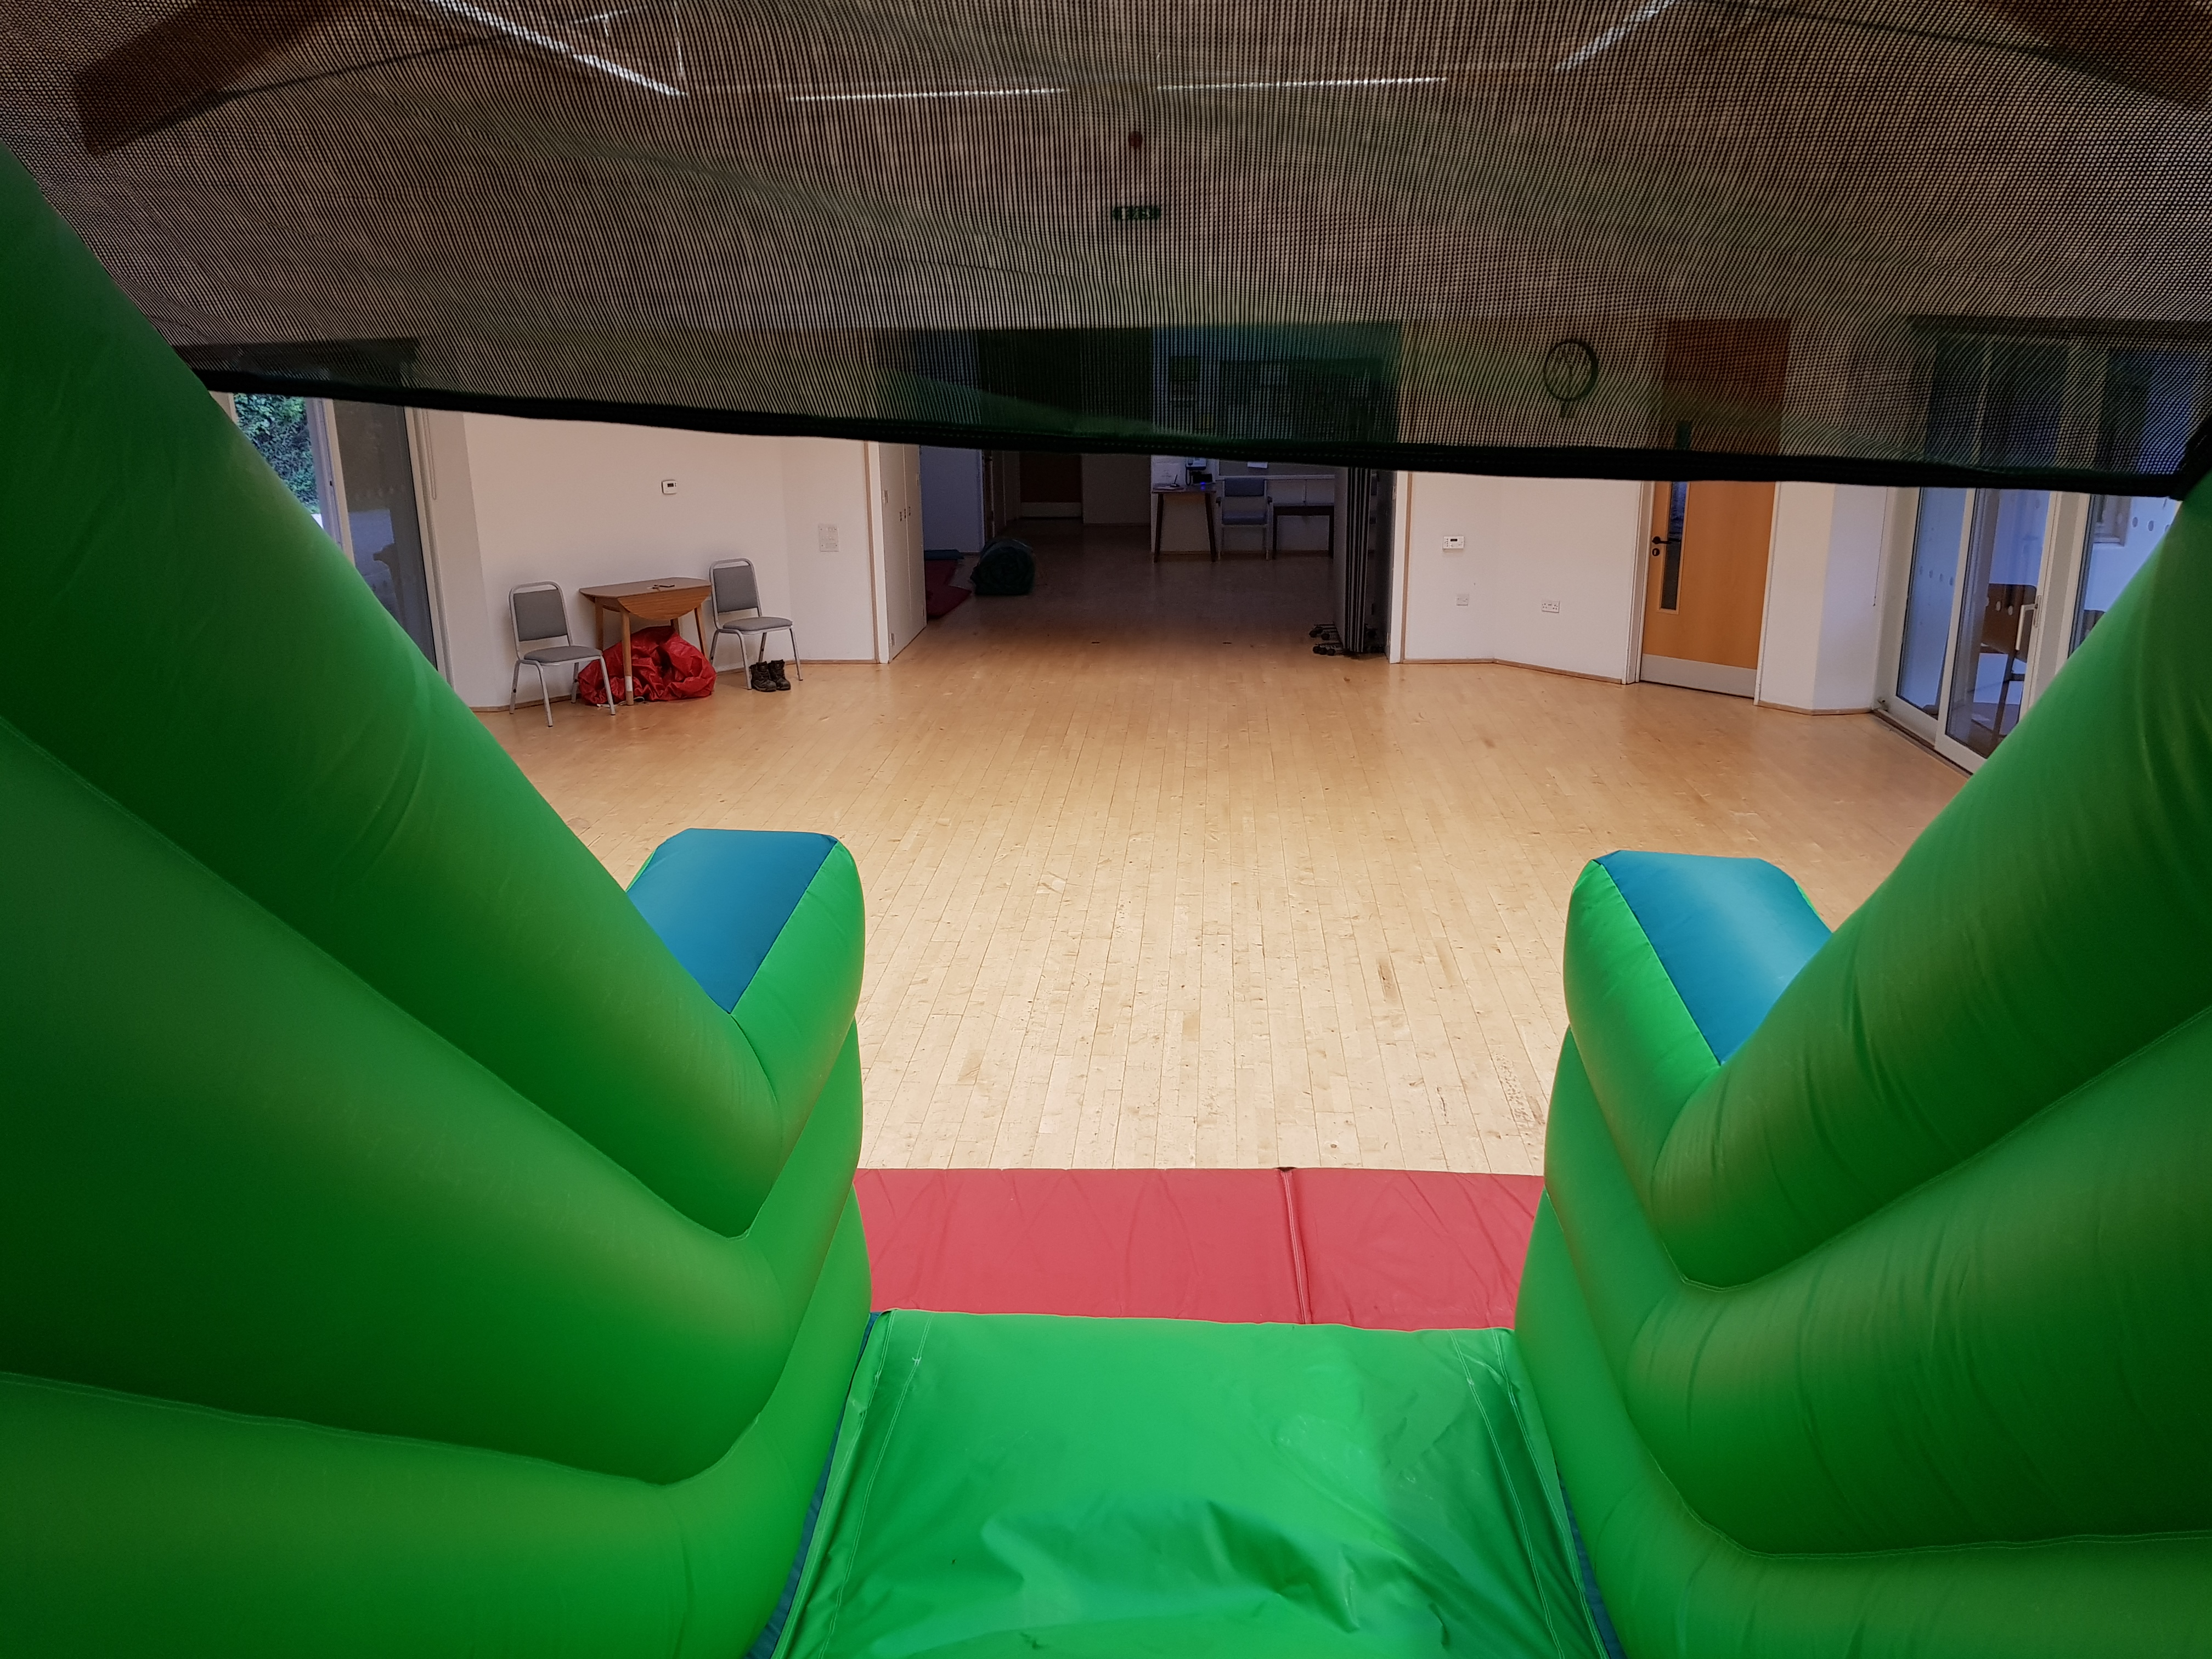 Bouncy castle slide hire in torbay, newton abbot and Paignton